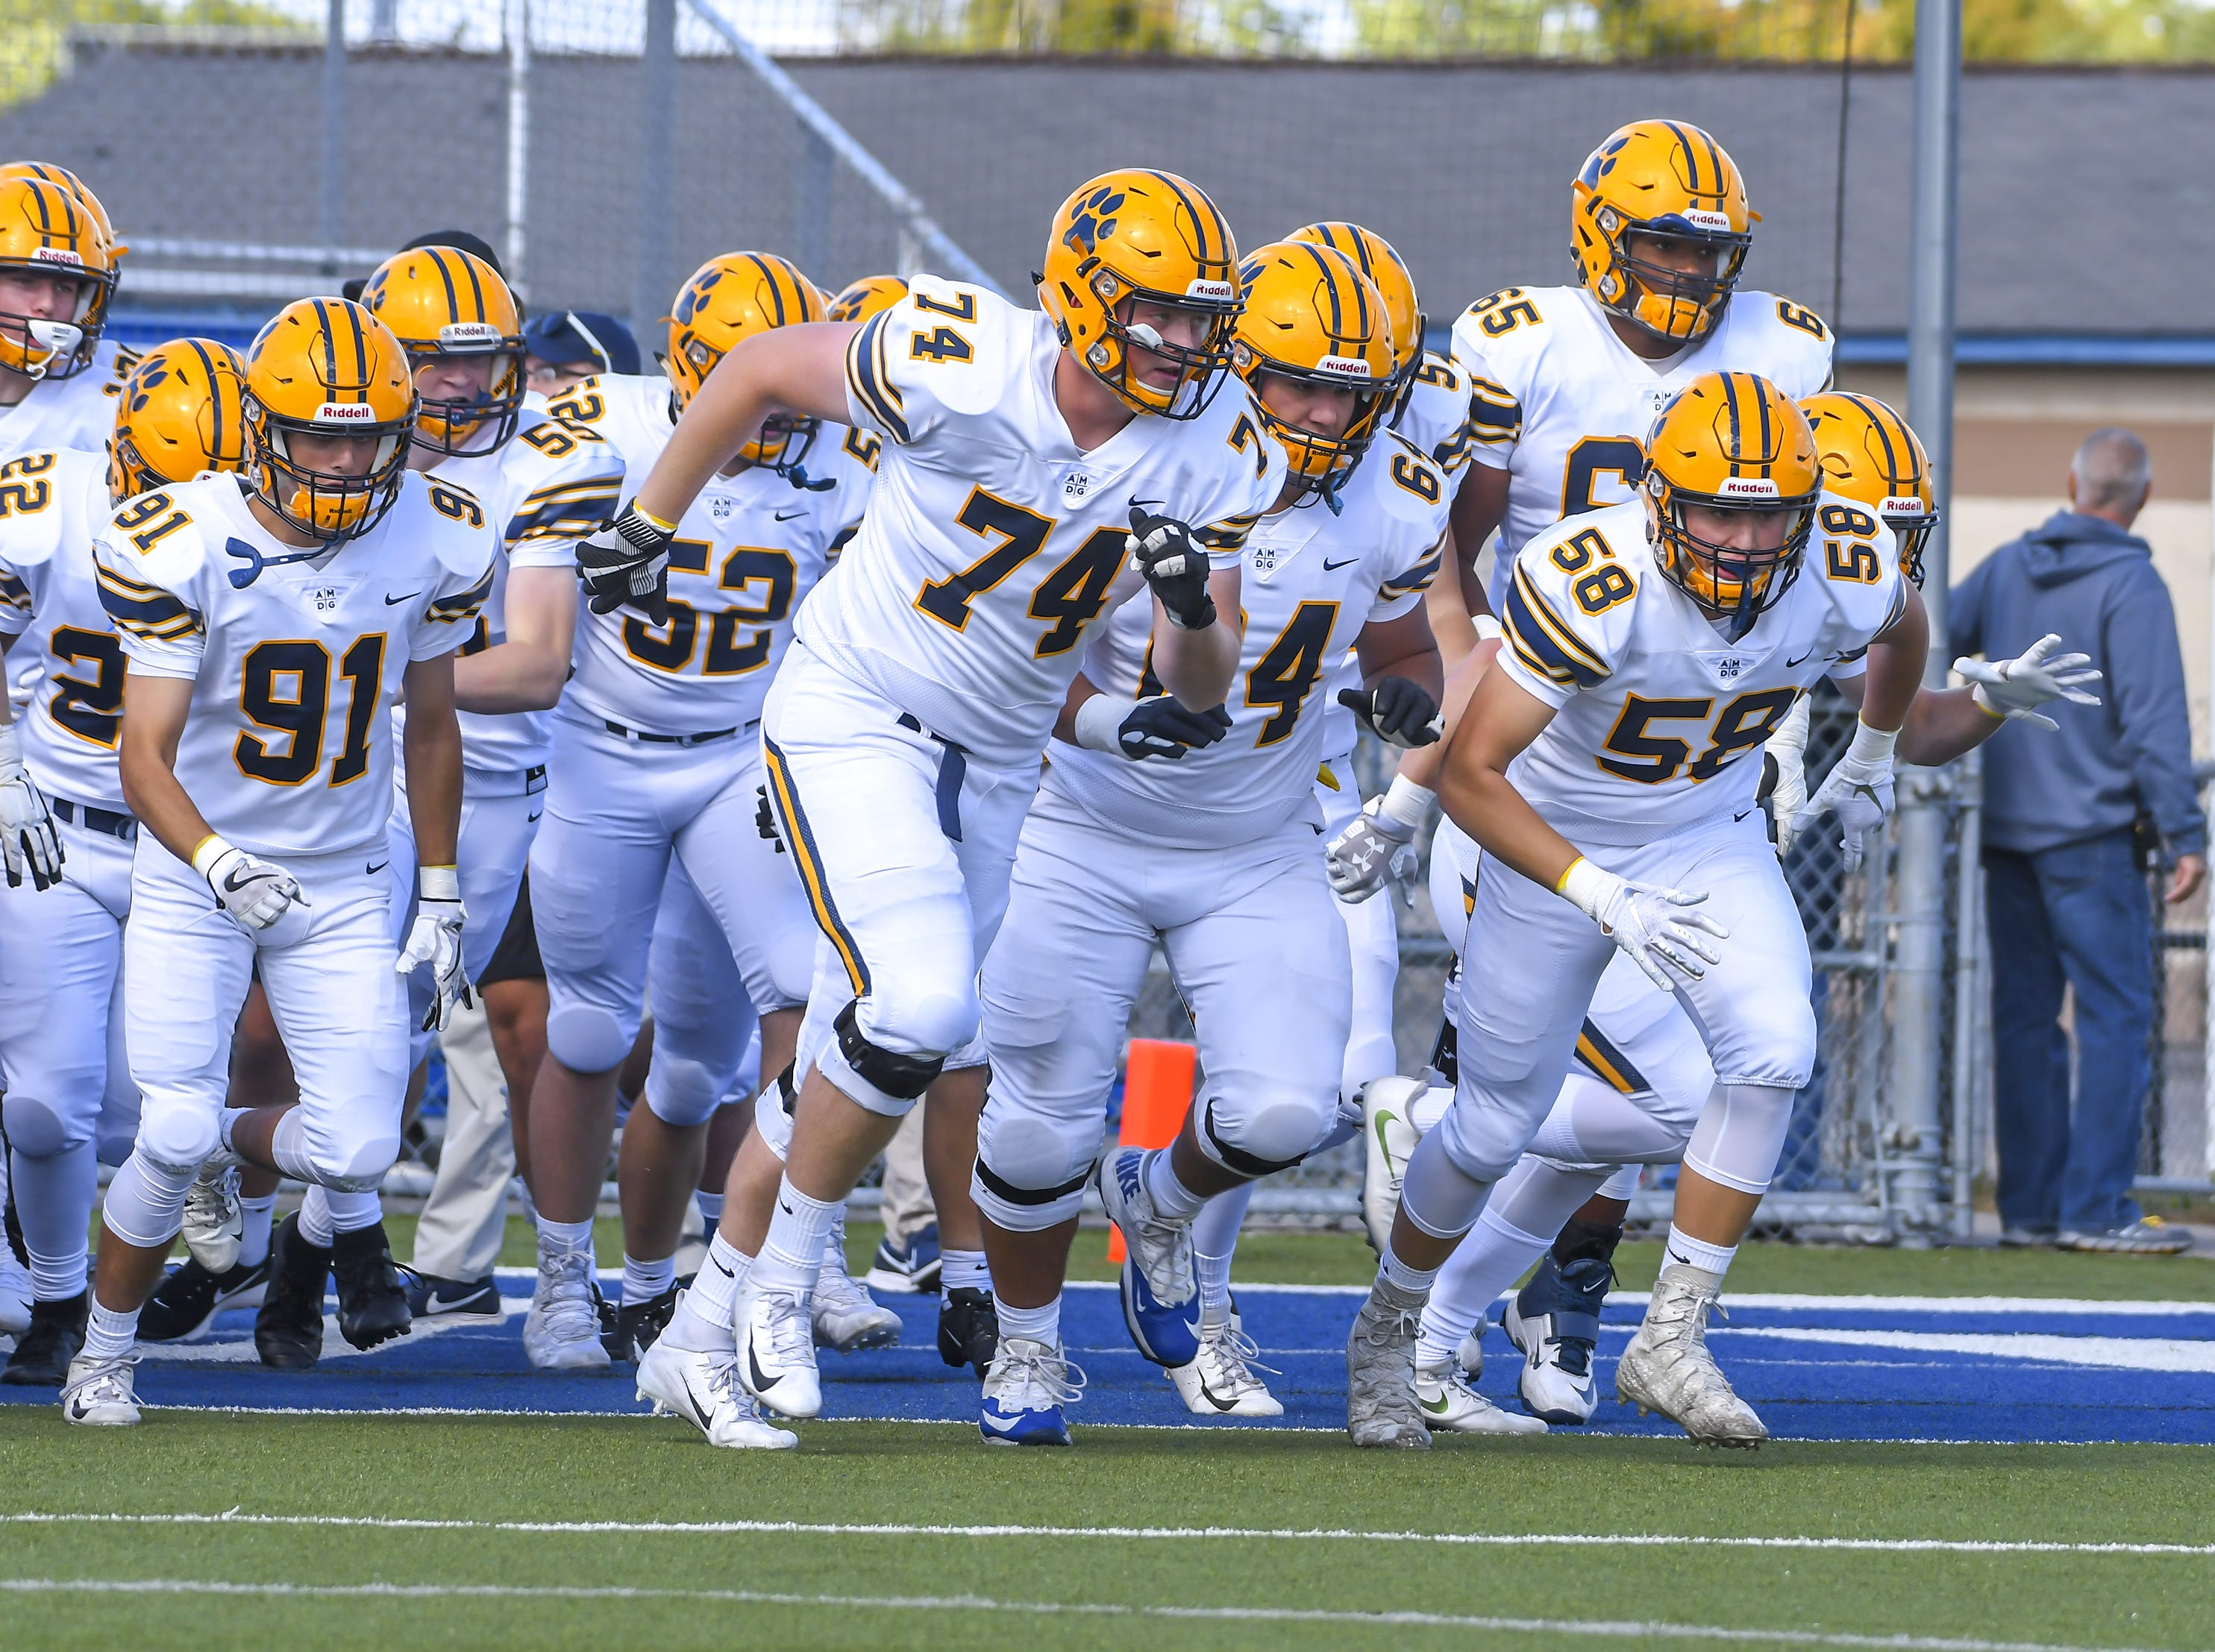 Cleveland St. Ignatius players run ontot the field before the game against St. x at St. Xavier High School, Saturday, October, 20 2018